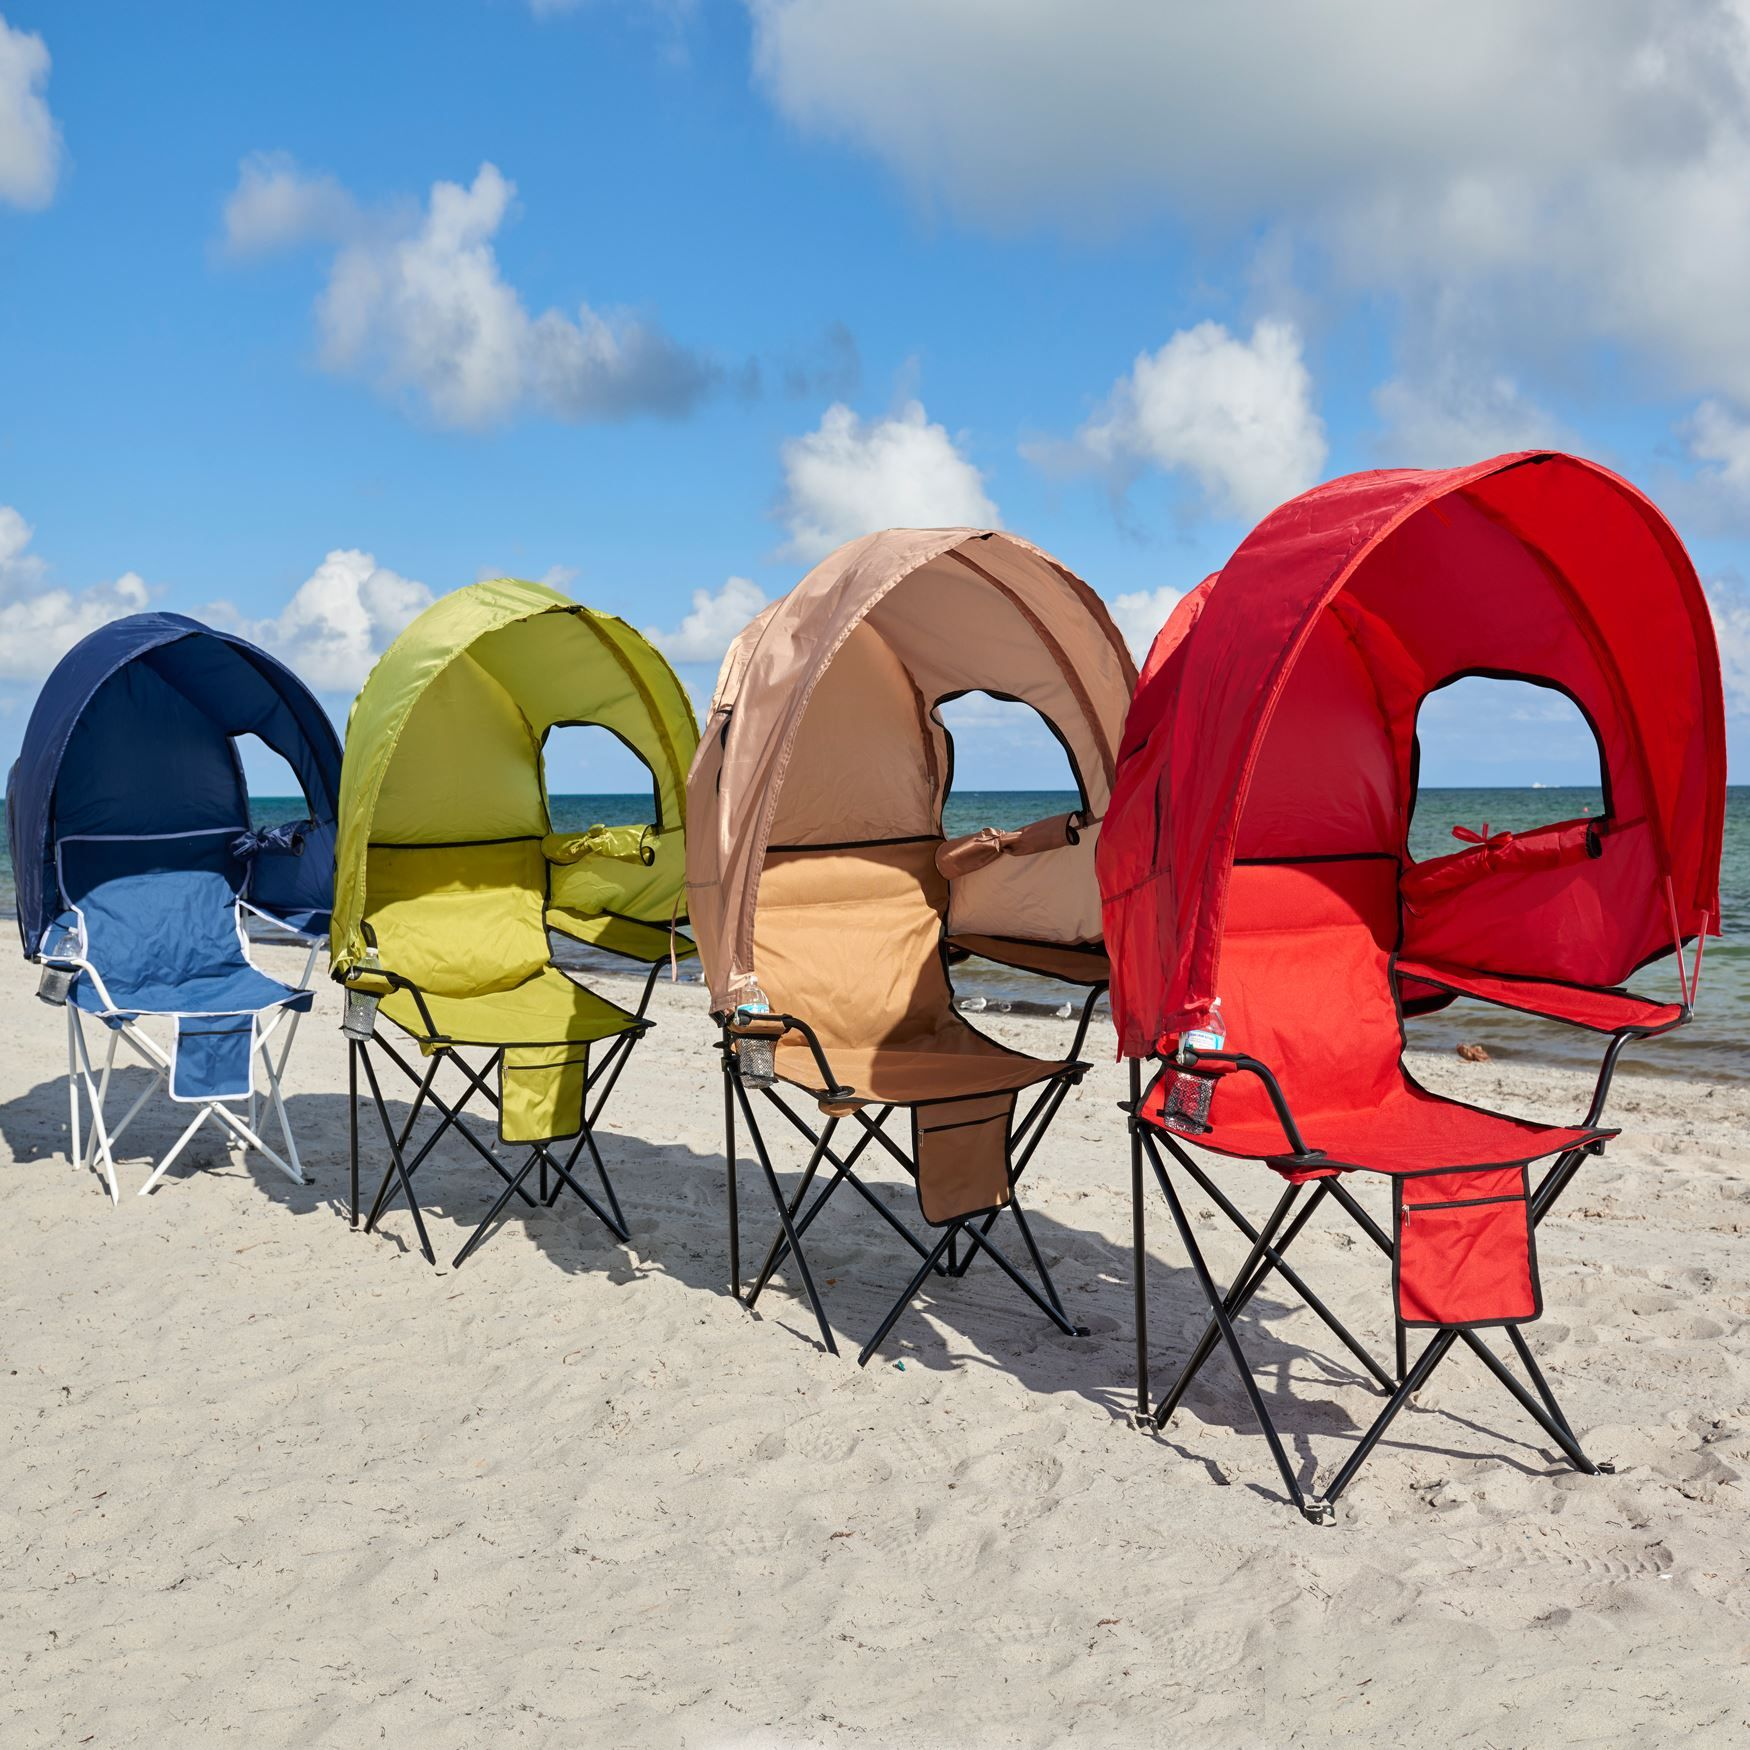 Fold Up Chair With Canopy Our Camp Chair With Canopy Is A Great Choice For Plus Size Outdoor